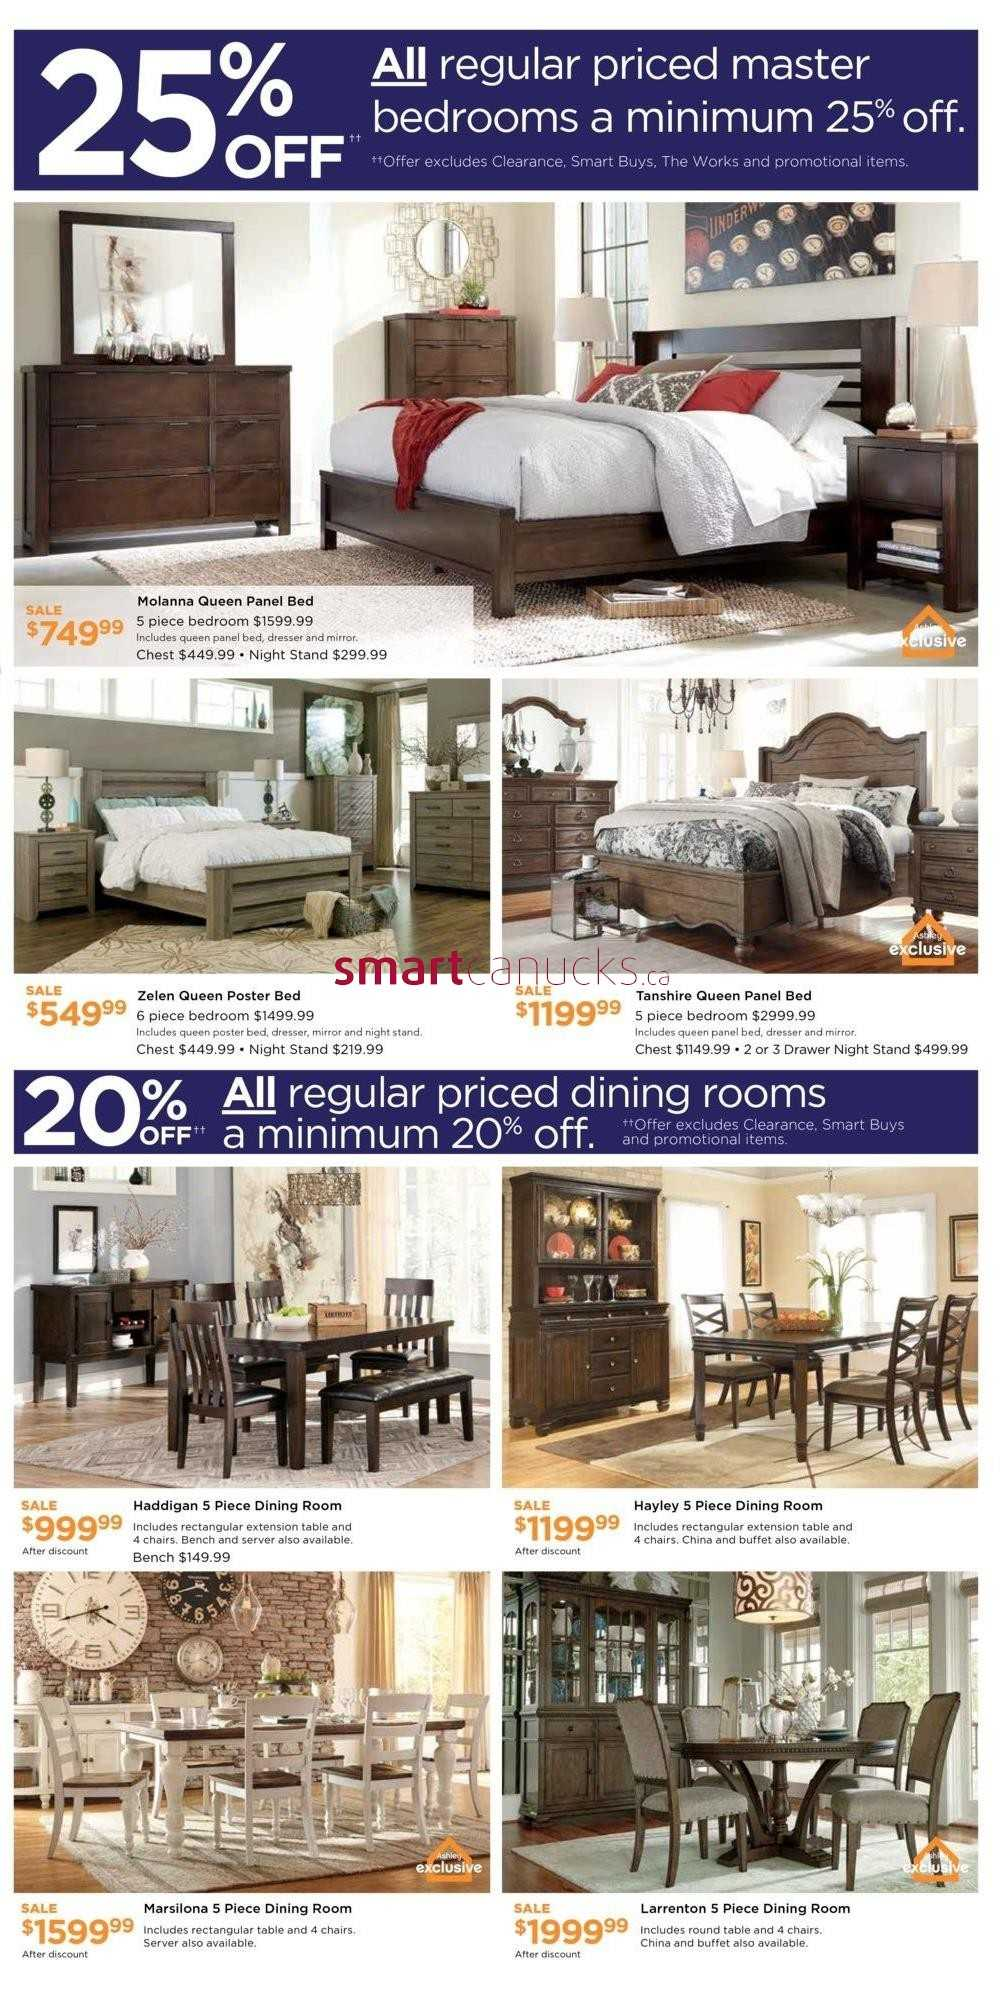 Ashley furniture homestore on flyer june 22 to 26 for Ashley furniture homestore canada